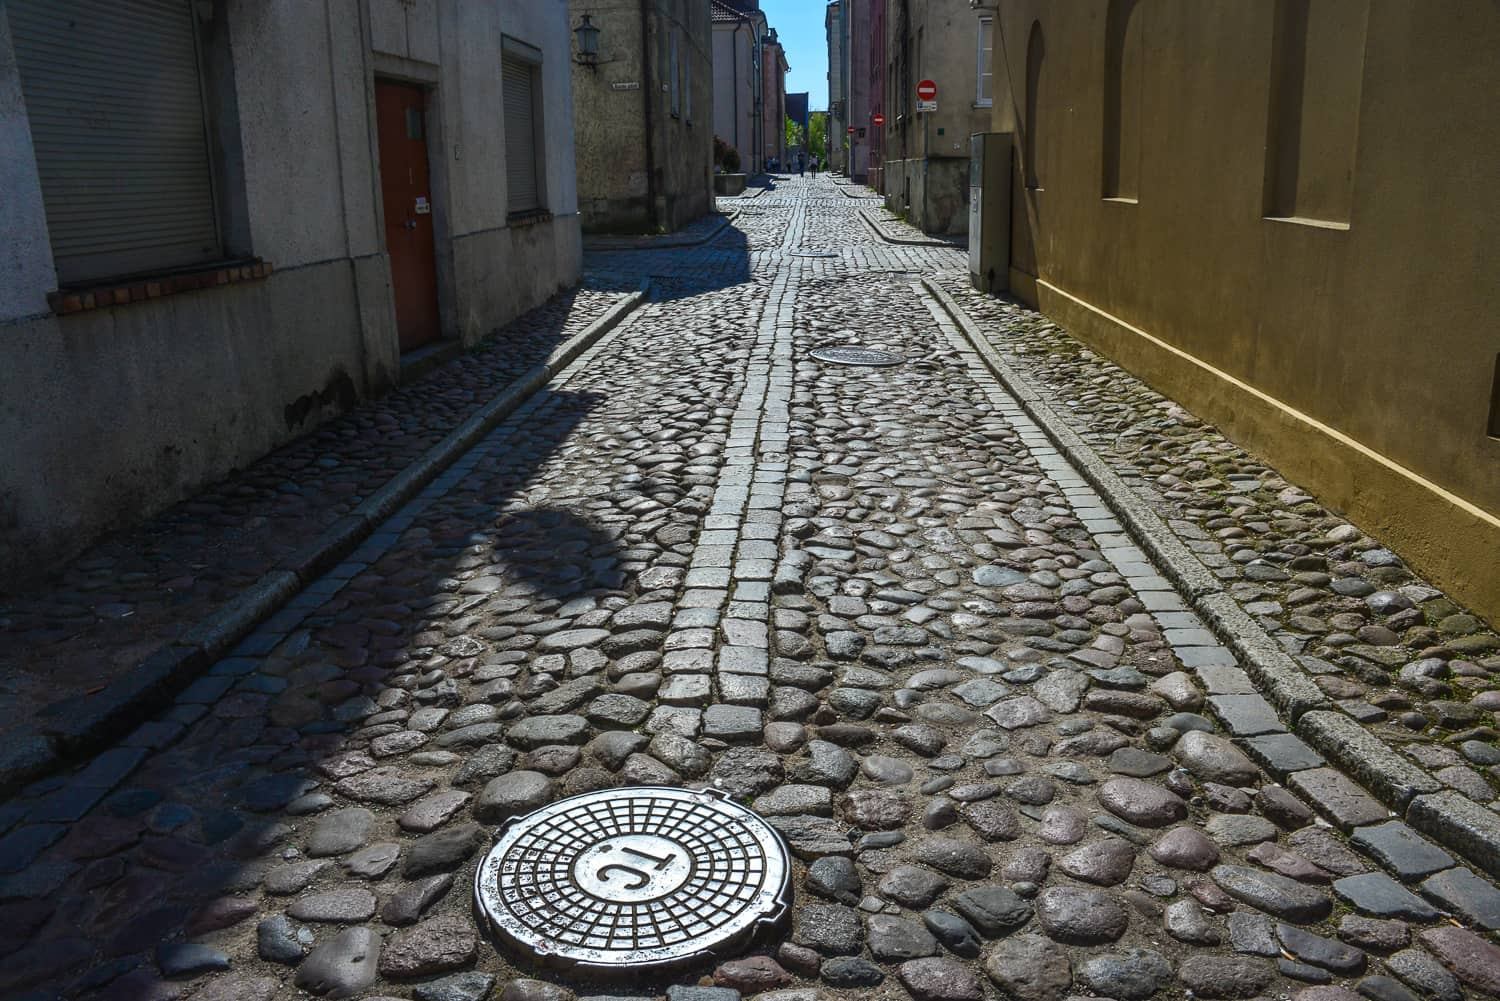 This town has COBBLES!